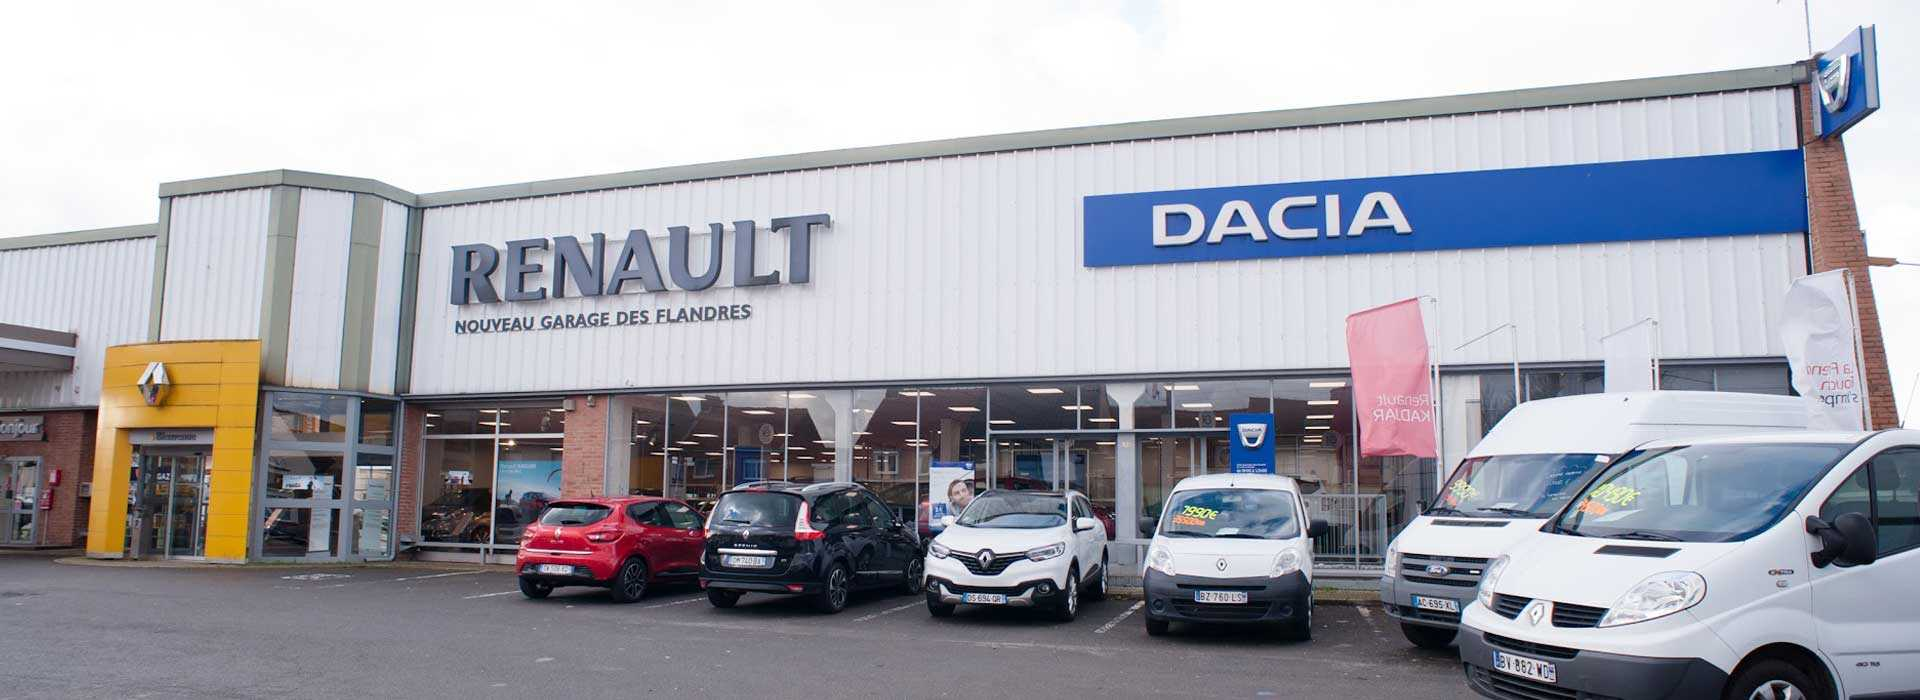 Dacia Wormhout